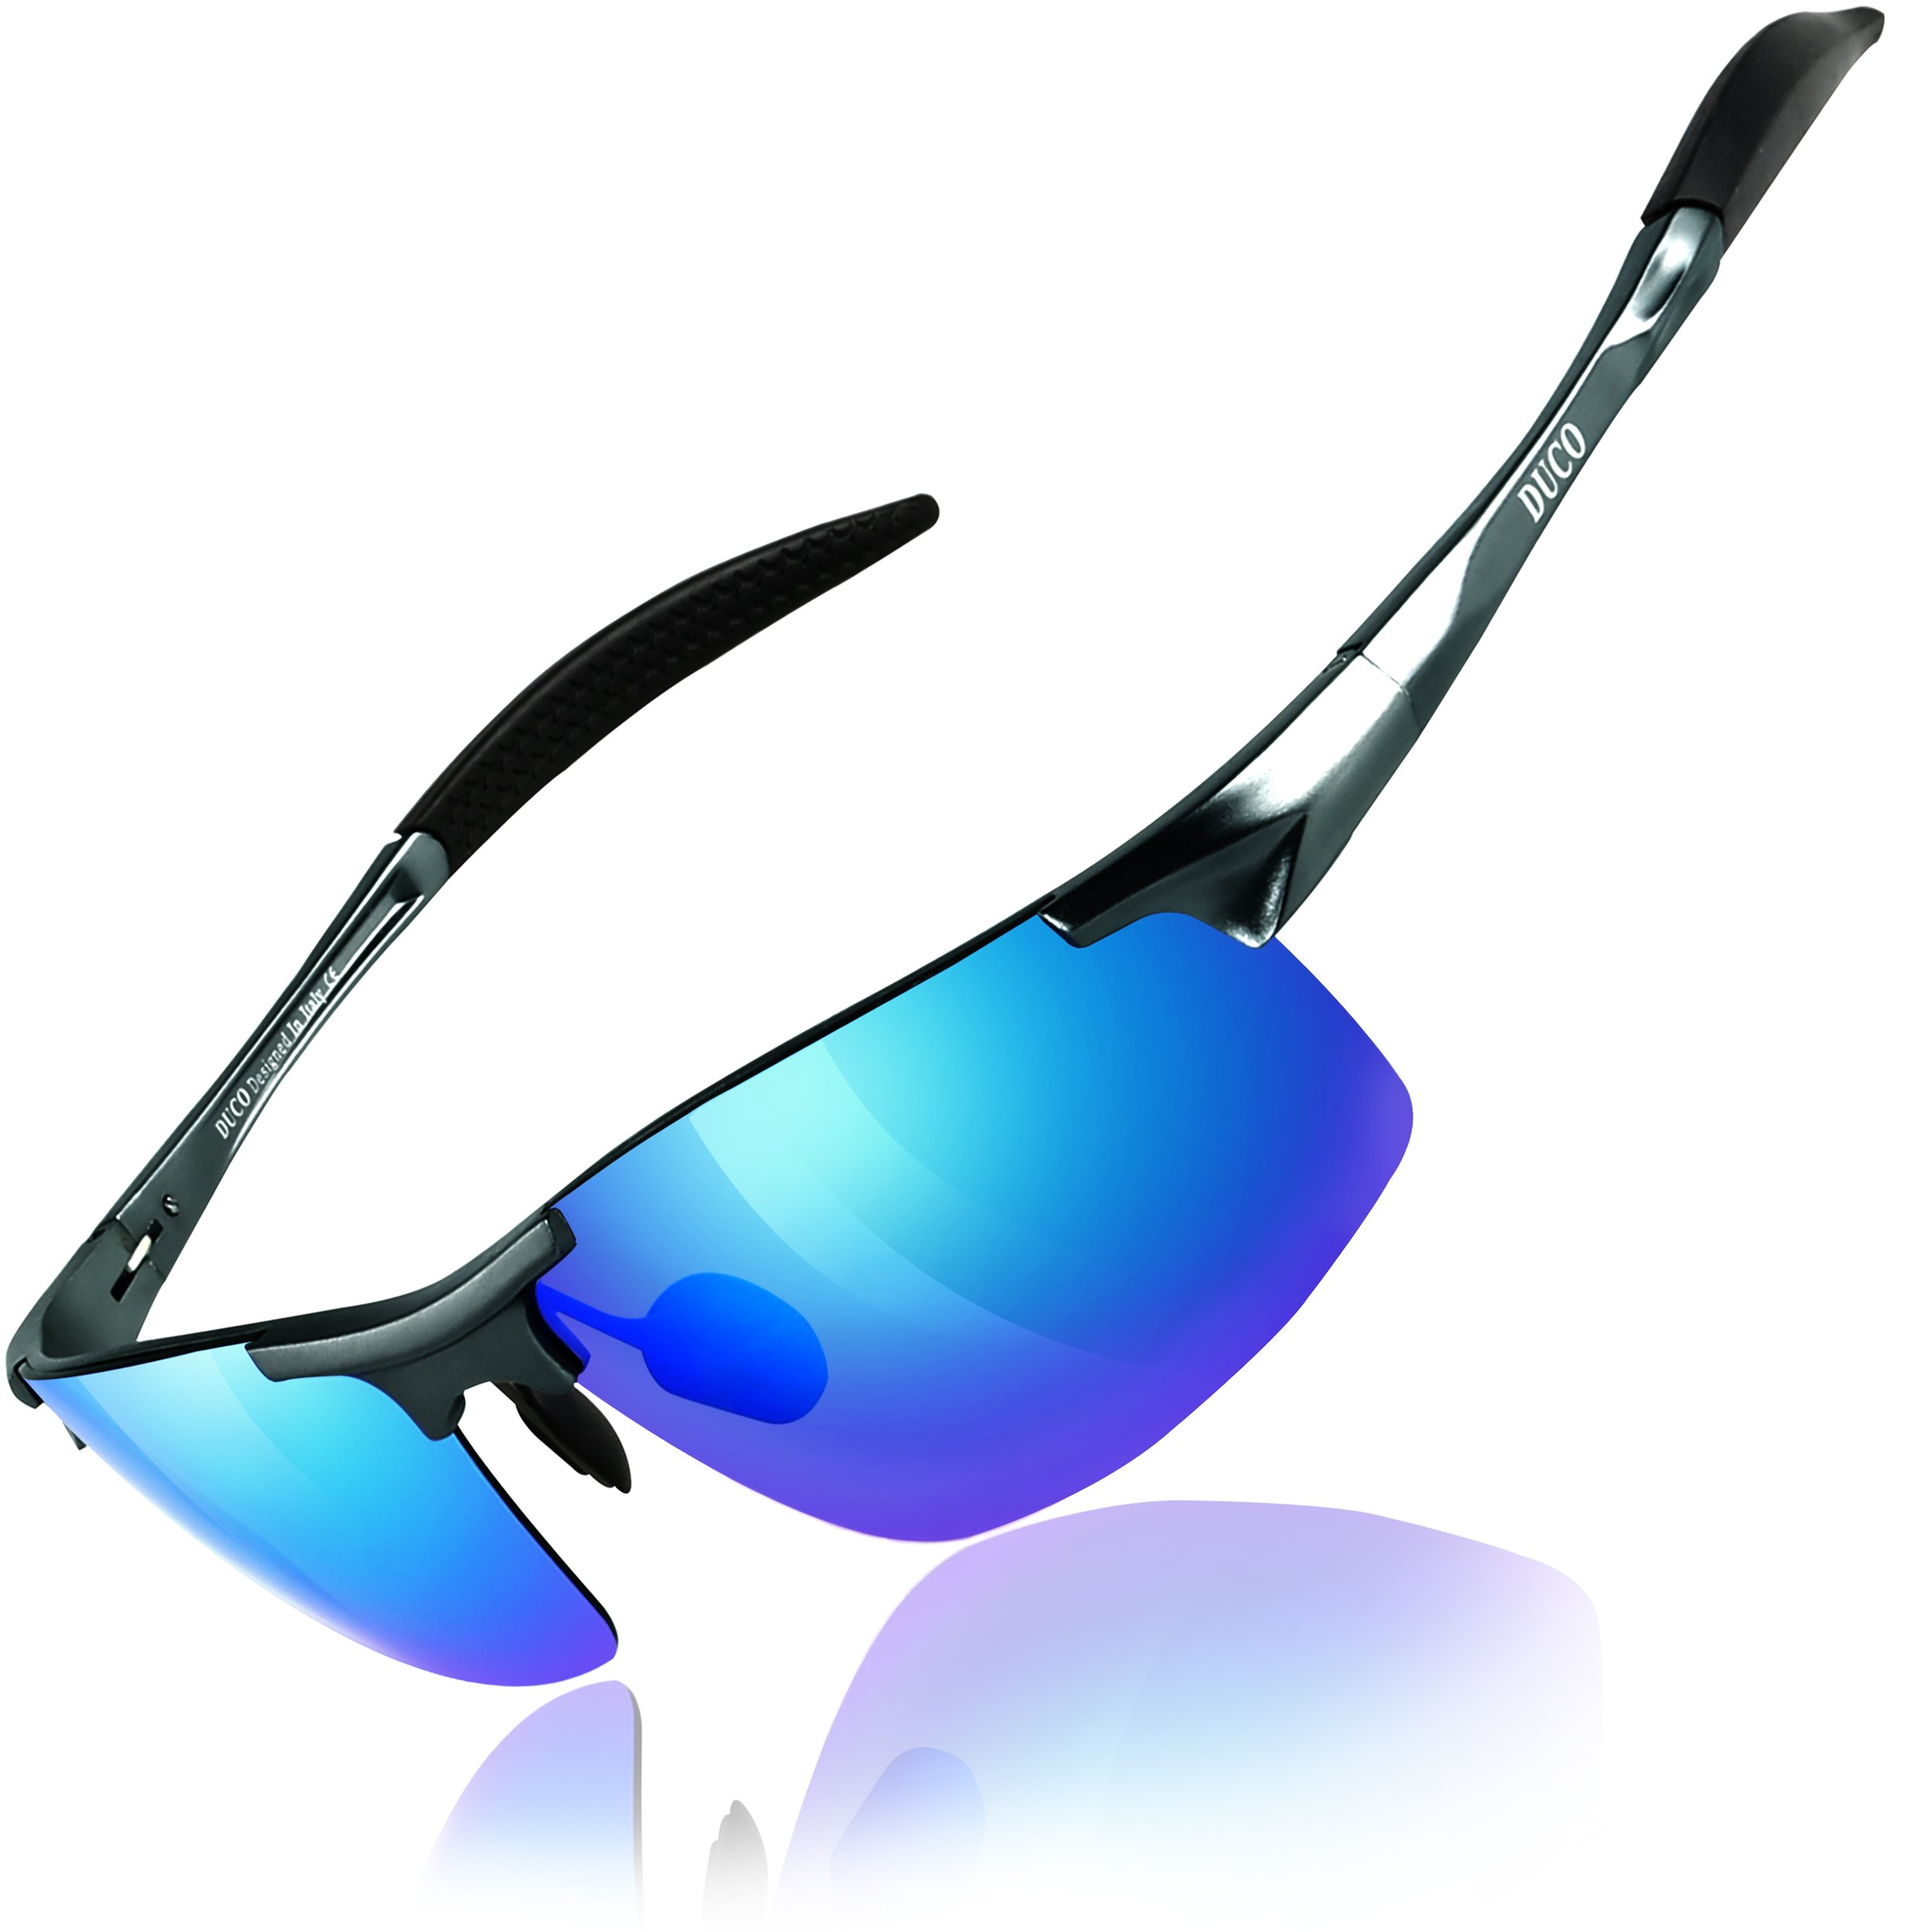 DUCO Mens Sports Polarized Sunglasses UV Protection Sunglasses for Men 8177s by DUCO